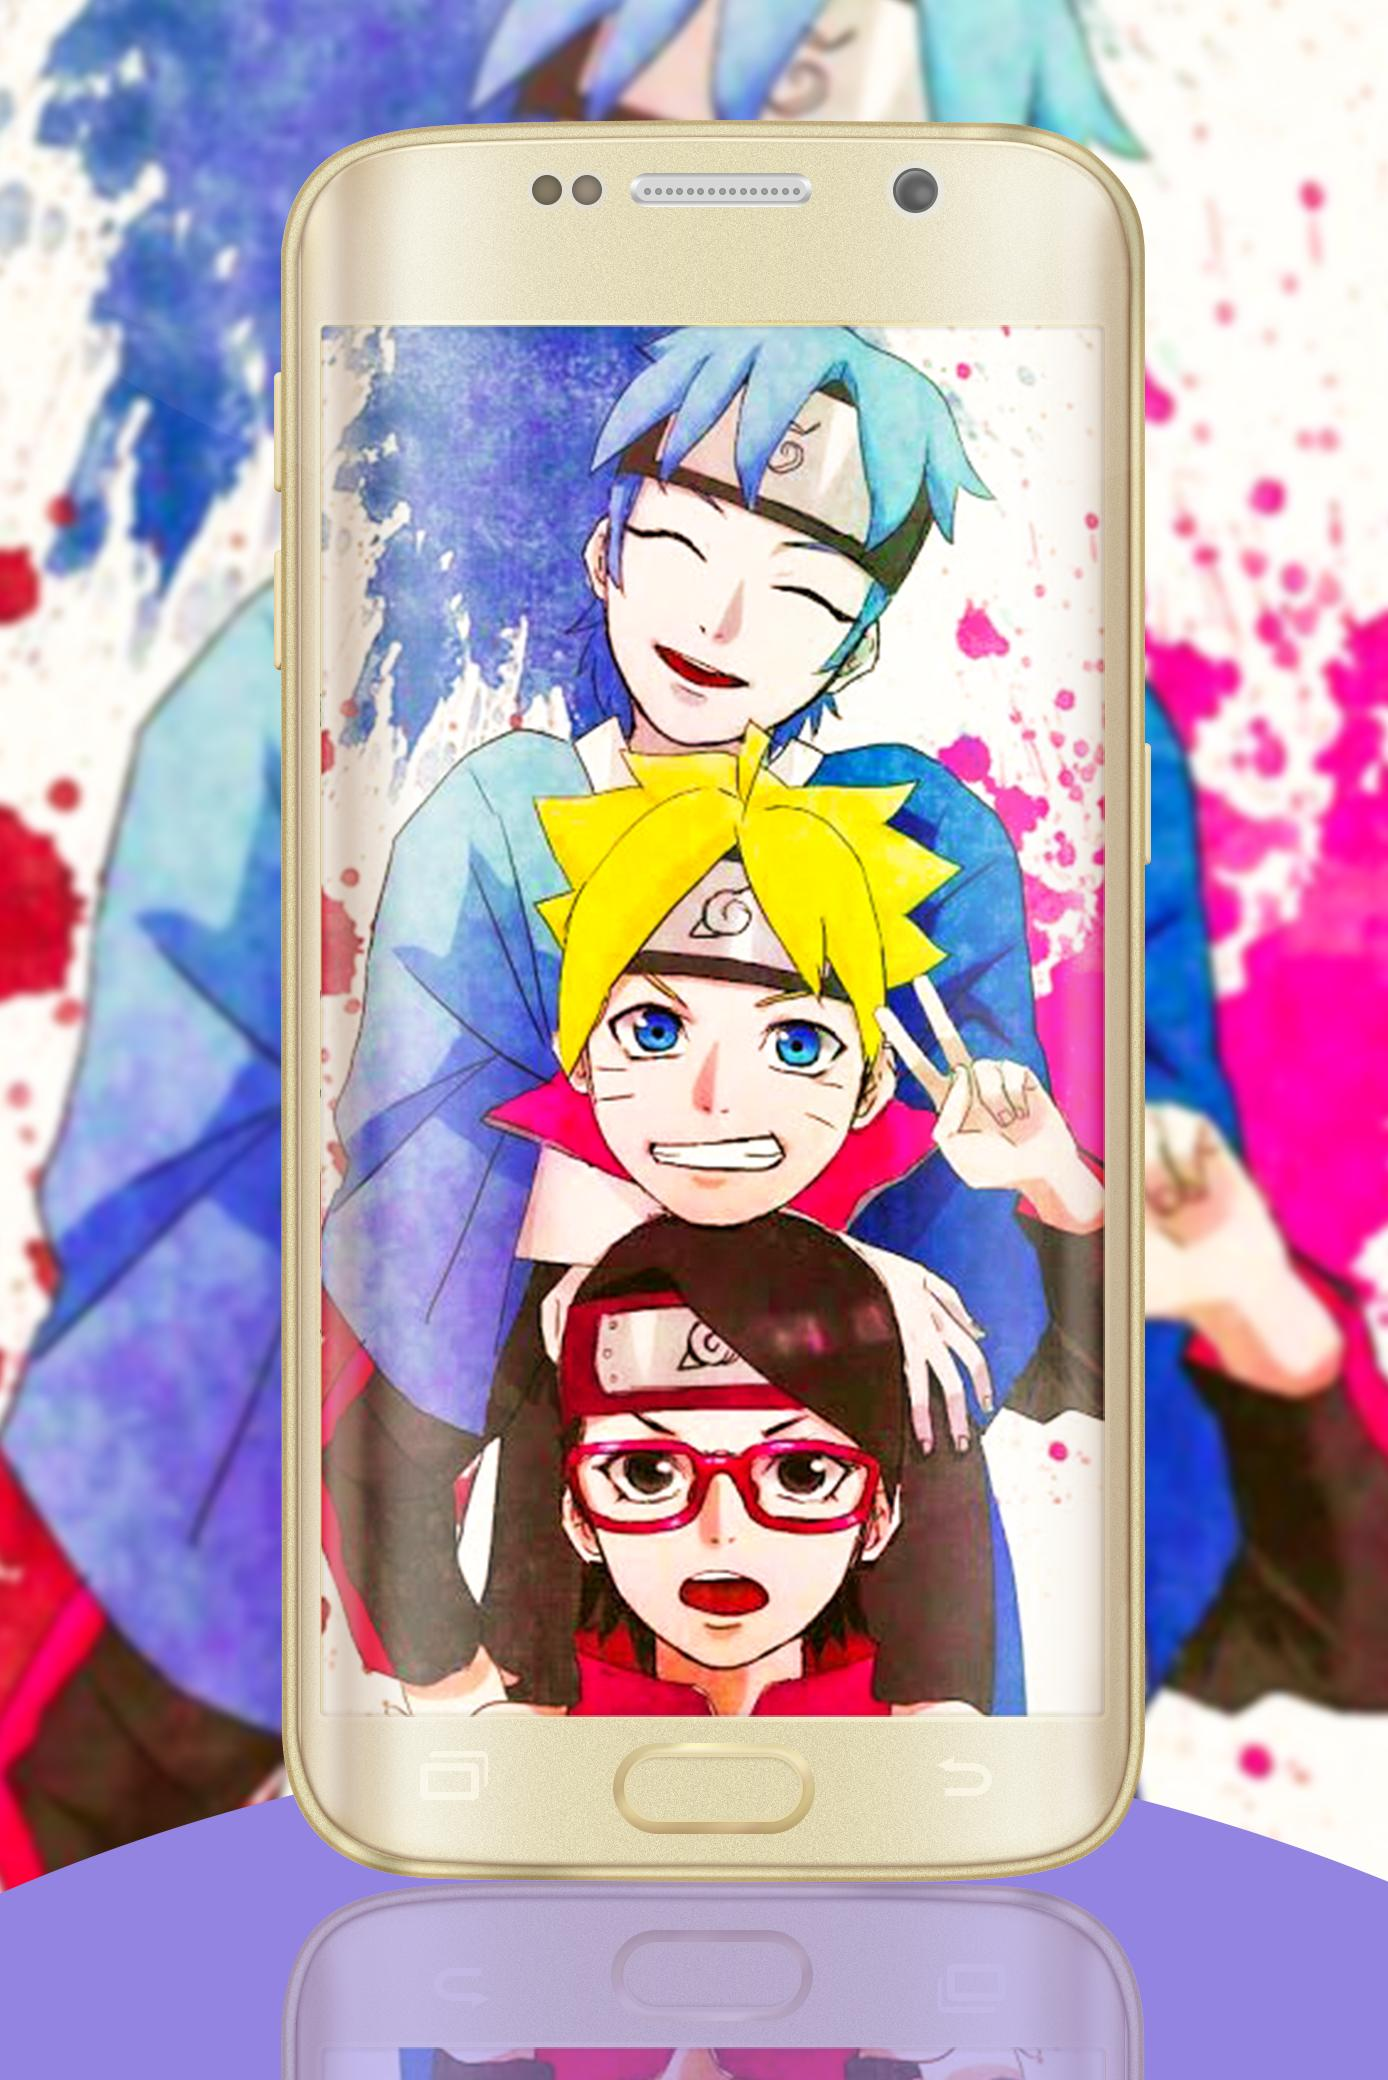 Next Boruto Hd Wallpapers For Android Apk Download